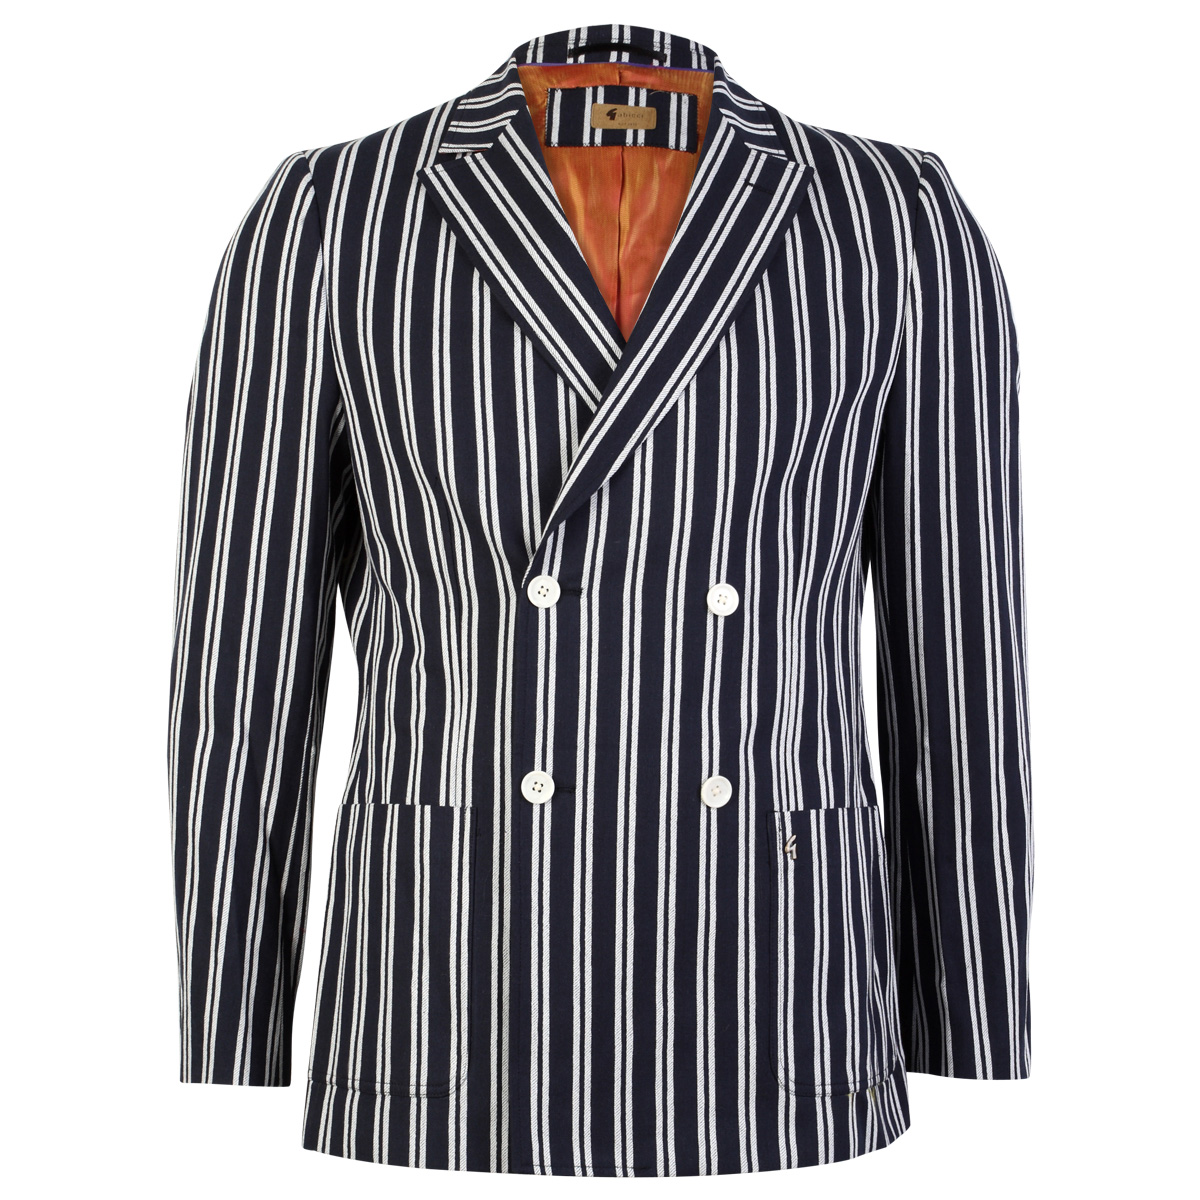 NEW GABICCI VINTAGE MENS NAVY BLUE STRIPED FORMAL SMART ...